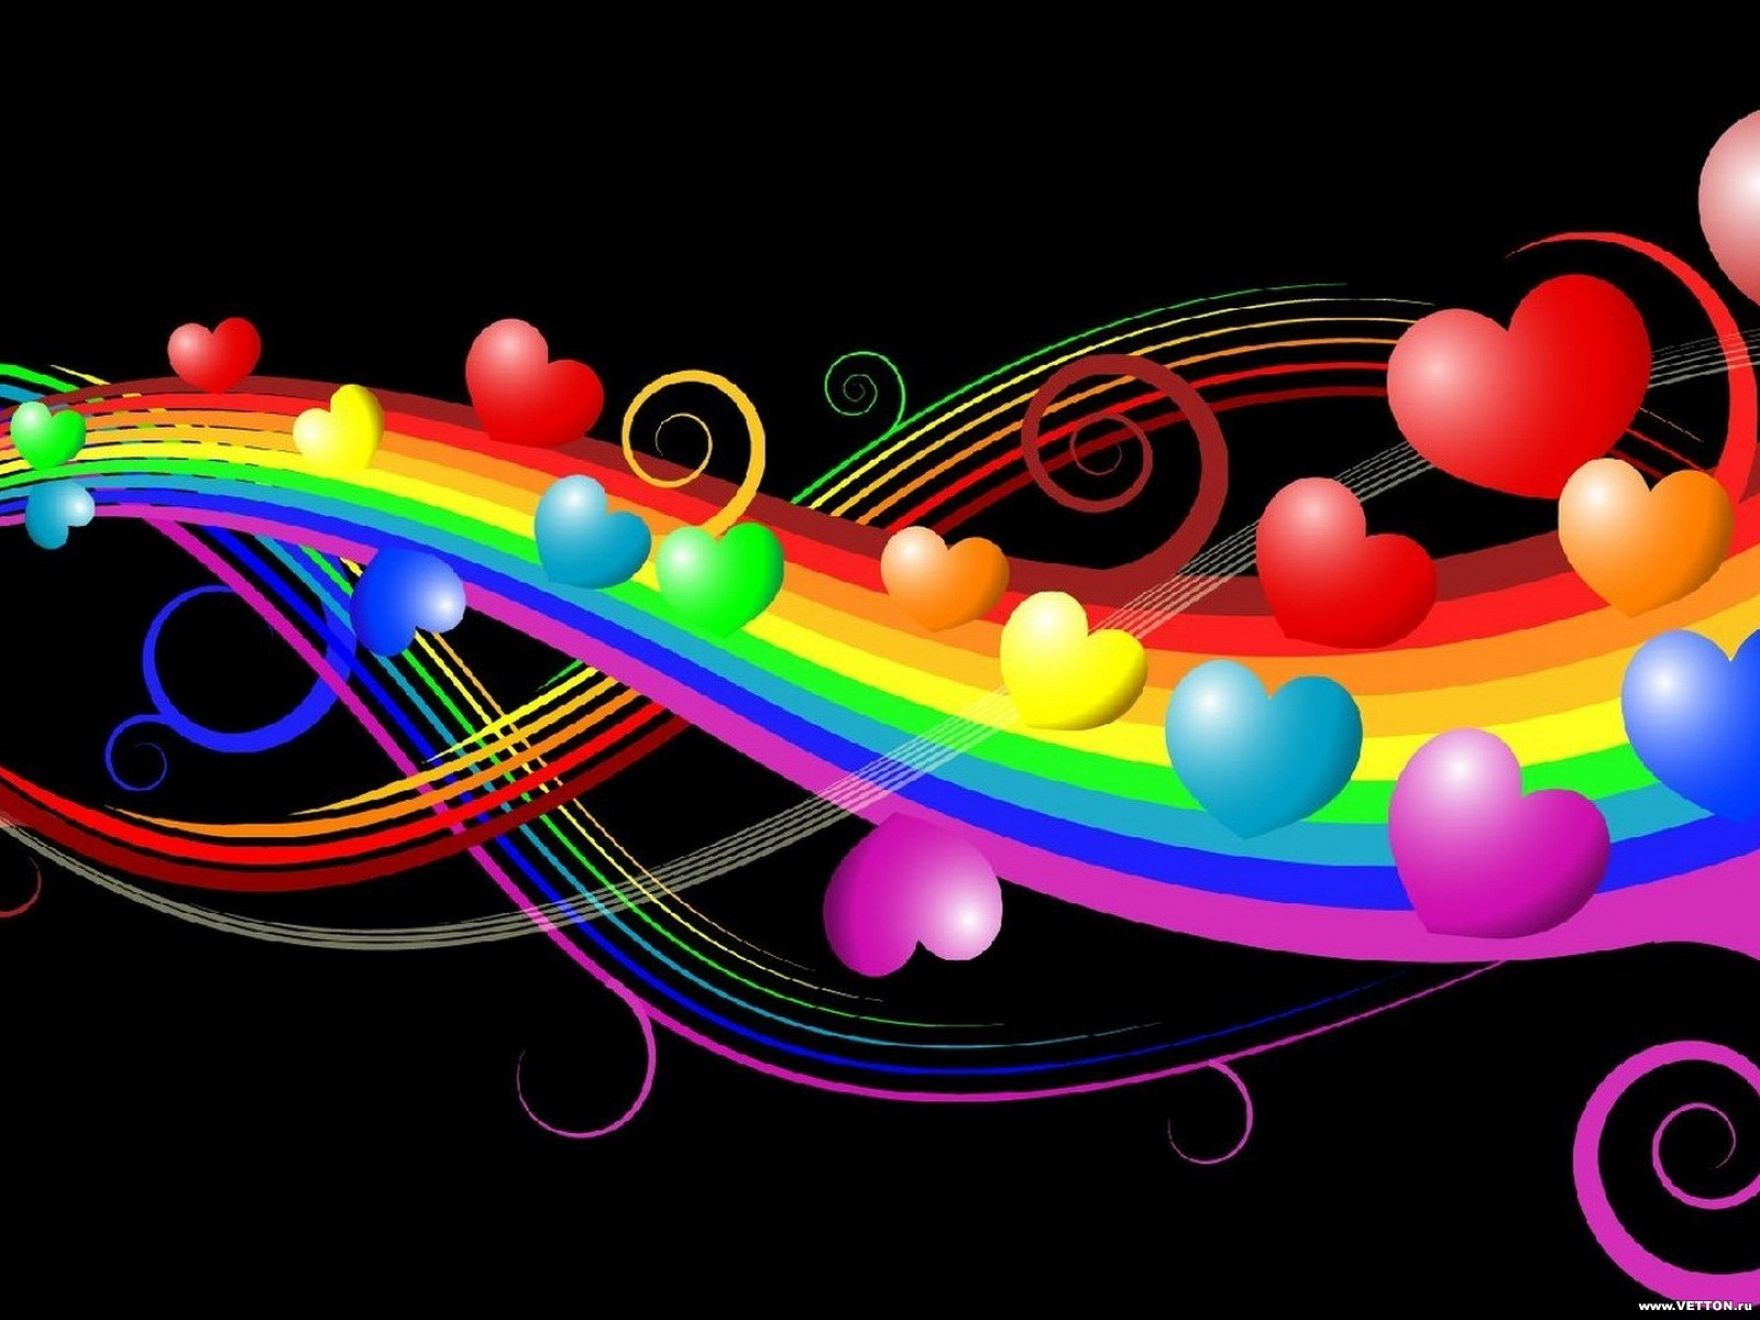 Download free HD 3D Colorful Background Wallpaper, image